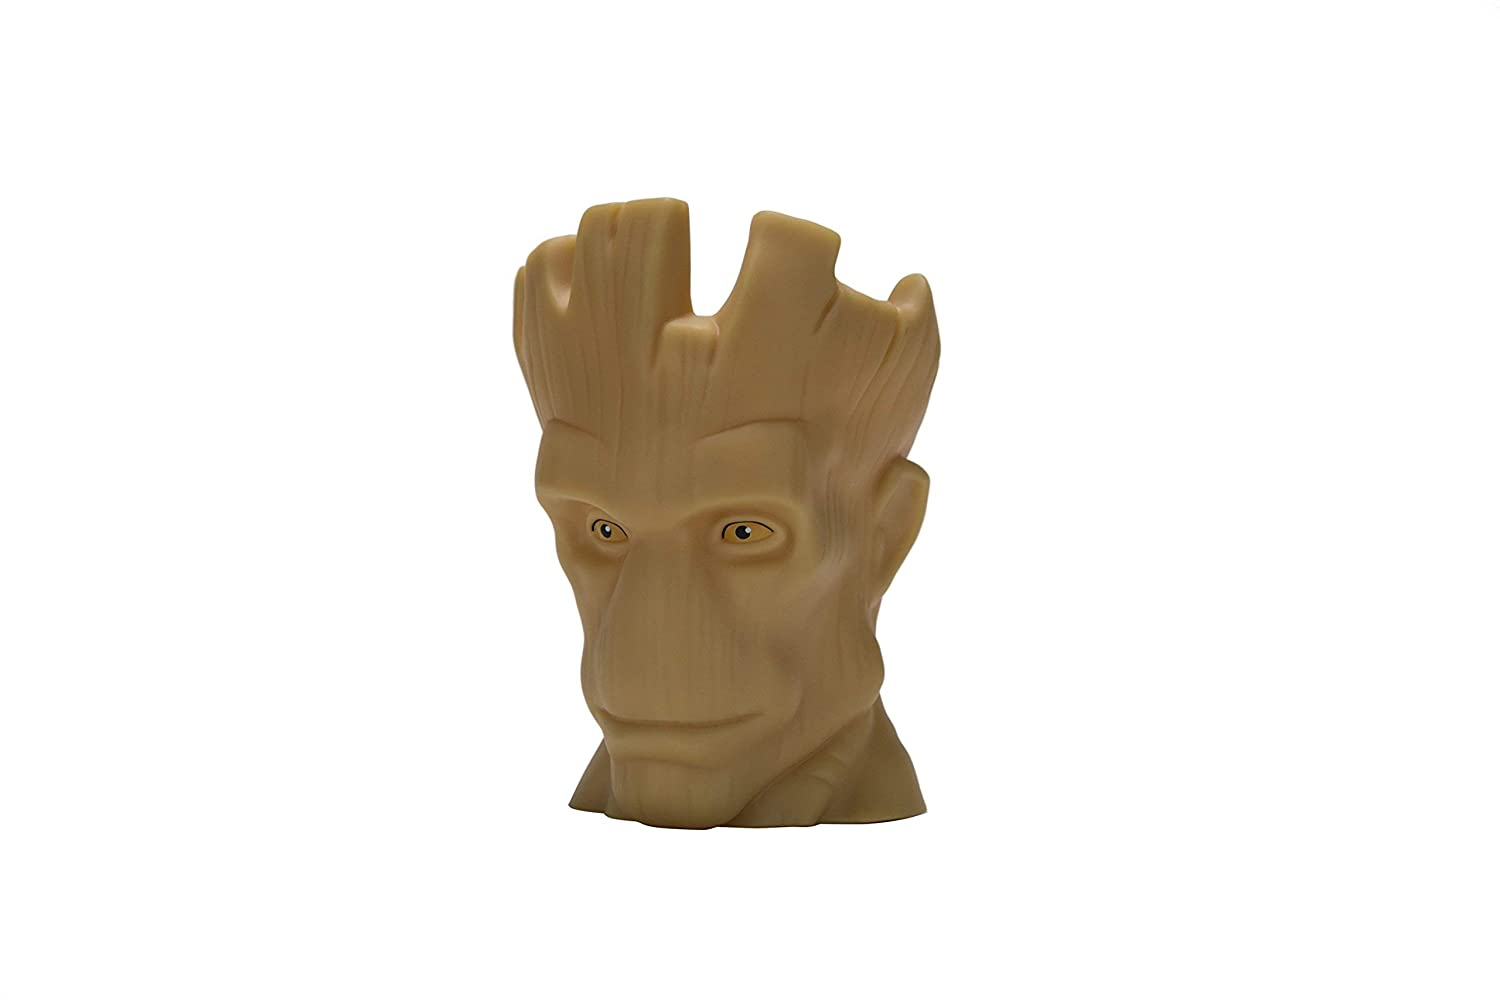 Guardians of the Galaxy the Groot illumi-mate B078YHQM3V illumi-mate Colour Changingライト B078YHQM3V, ムレムラ:24d1039a --- ijpba.info